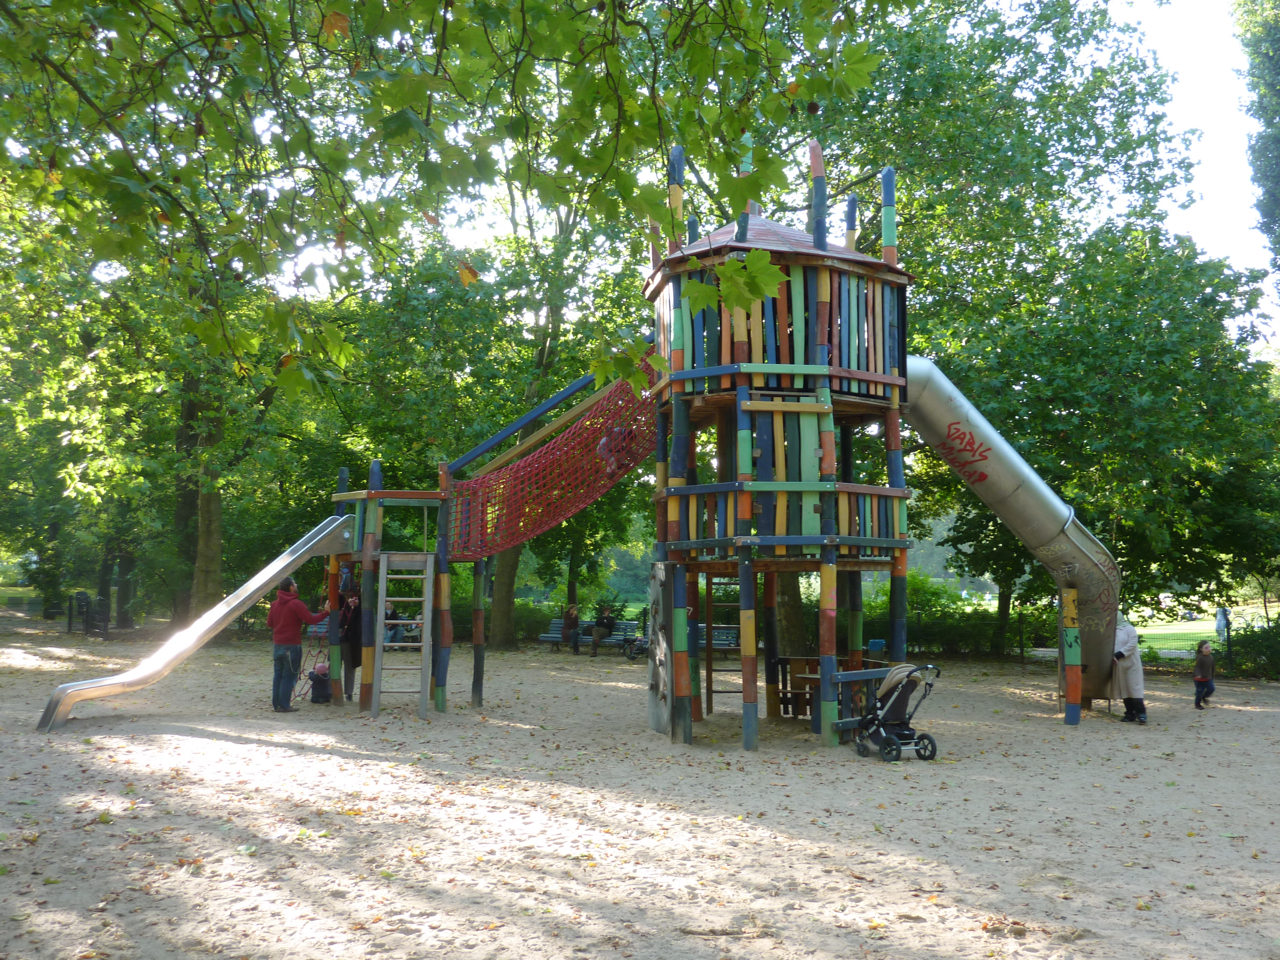 rias spielplatz im volkspark wilmersdorf kufsteiner strasse ytti. Black Bedroom Furniture Sets. Home Design Ideas